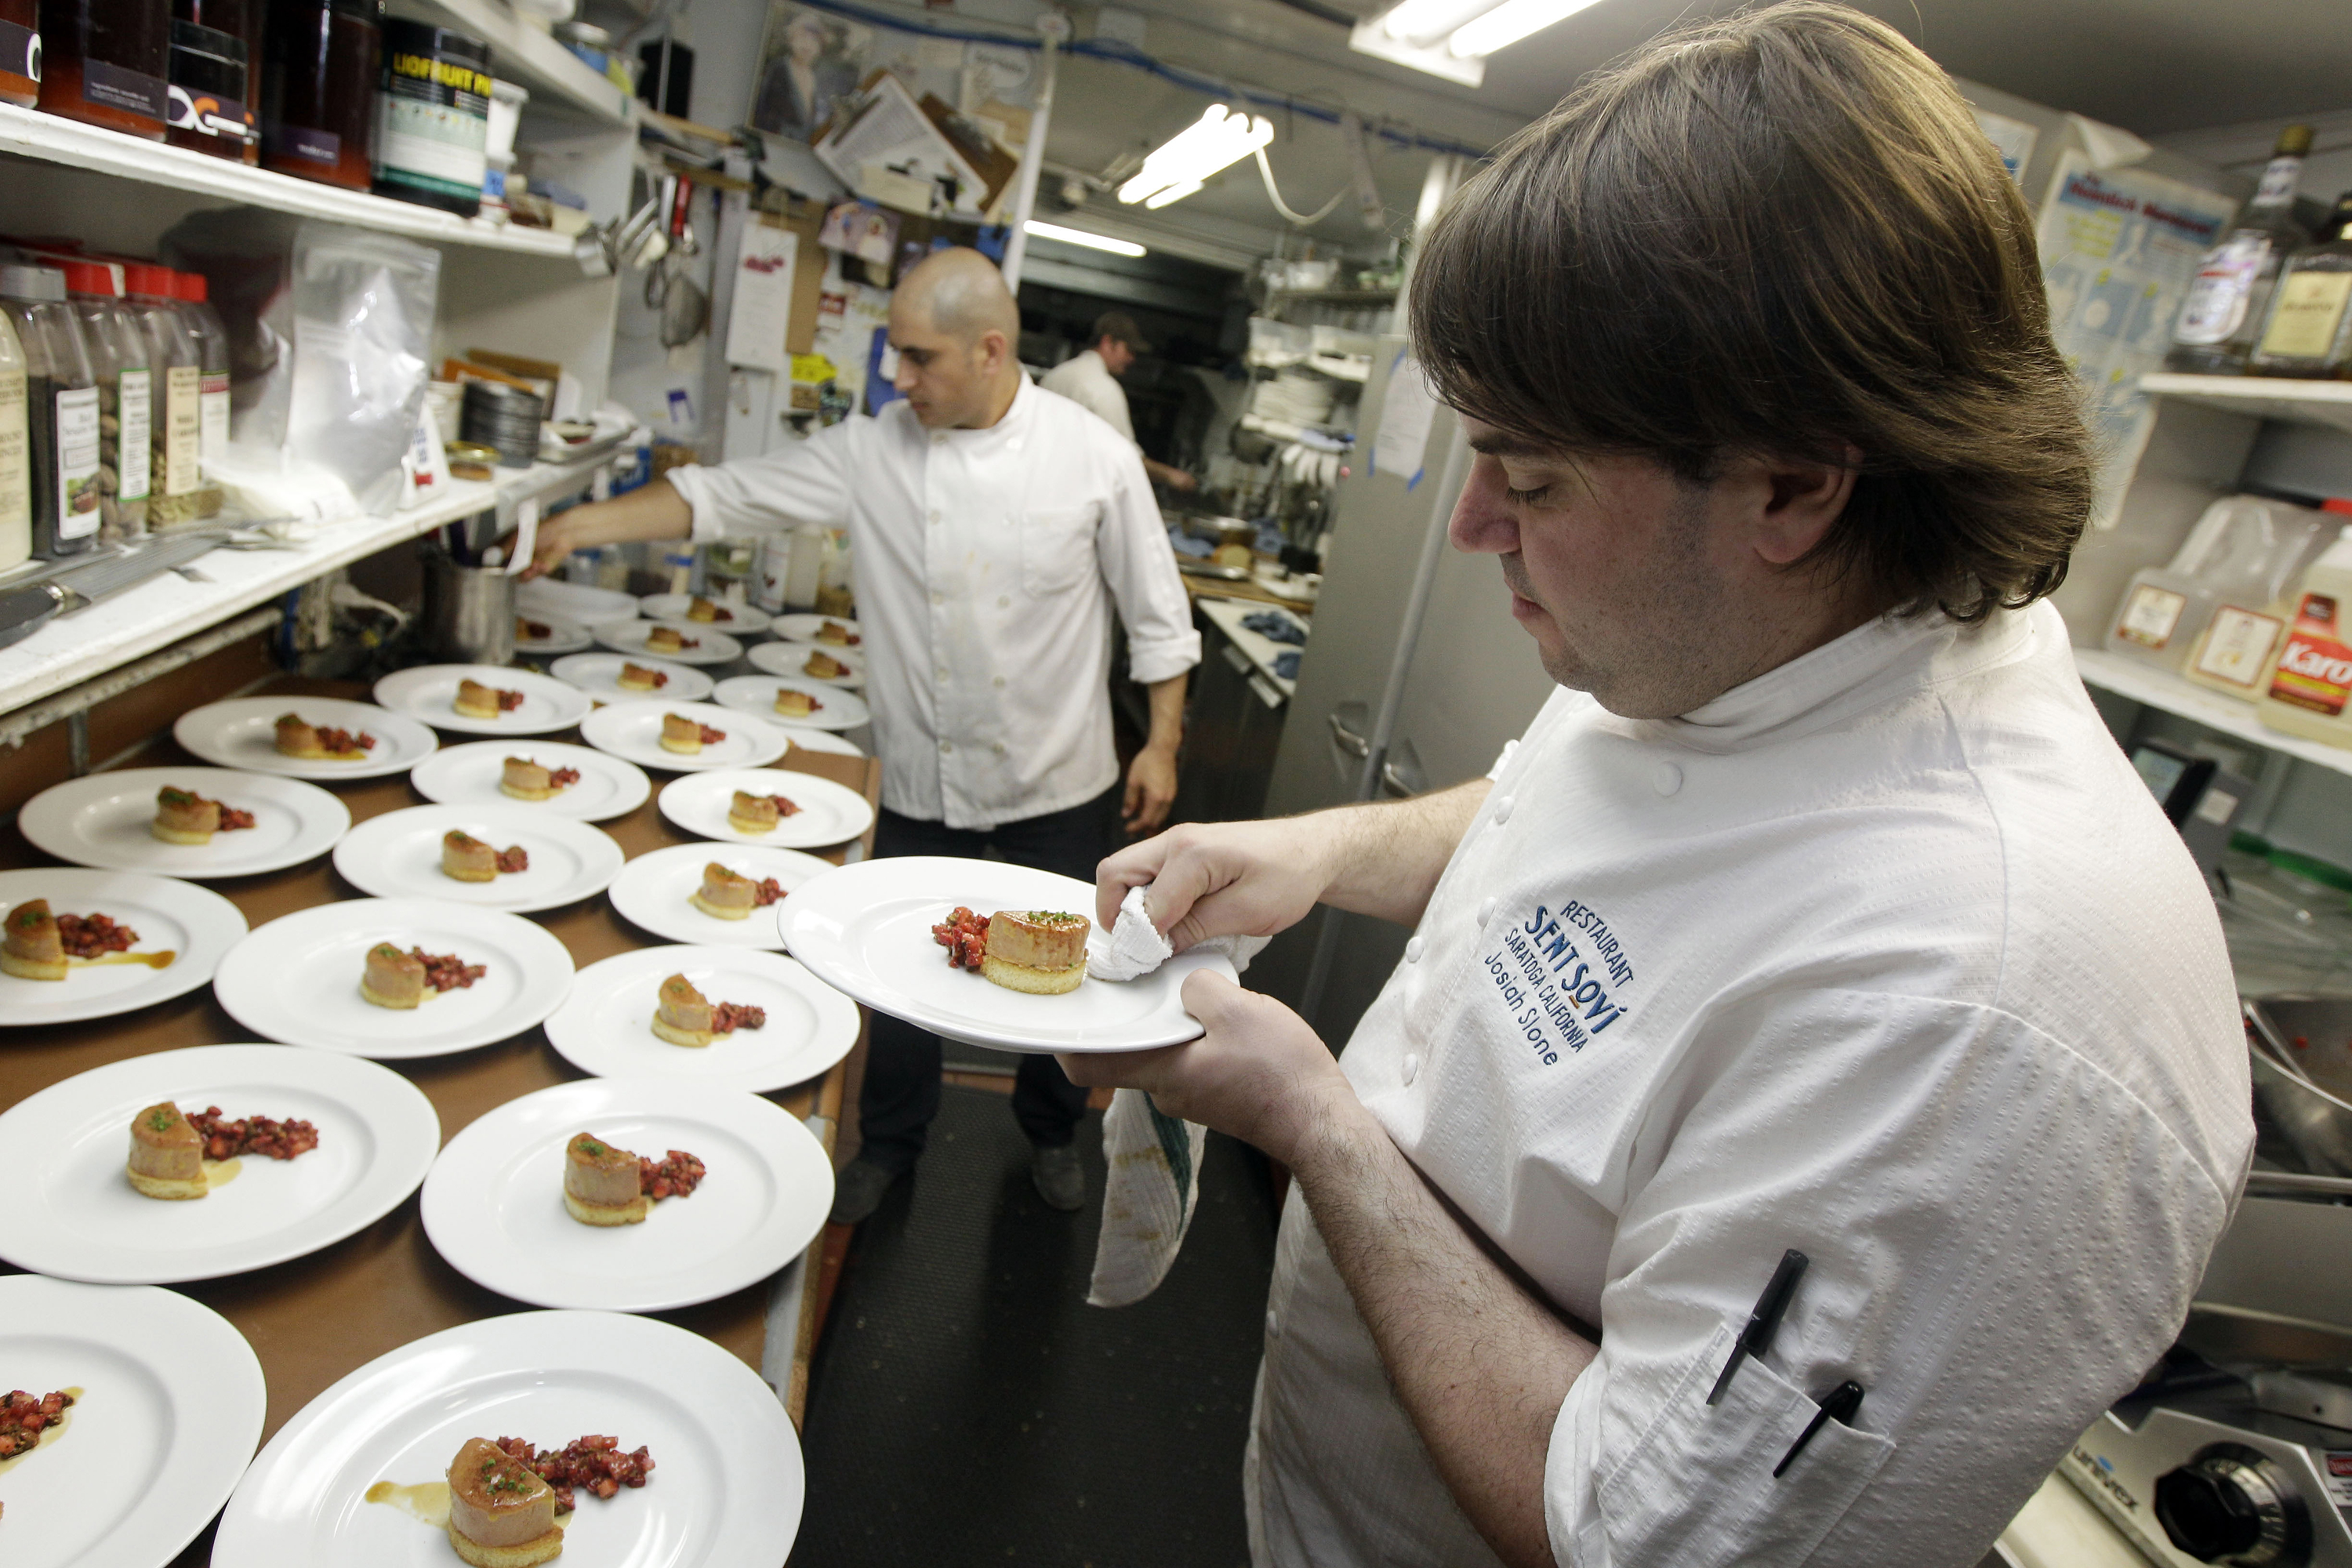 FILE - In this May 11, 2012, file photo, chef and owner Josiah Slone, right, prepares a foie gras dish at Sent Sovi restaurant in Saratoga, Calif. The Presidio Social Club restaurant is on federal land, so it's exempt from the restriction.  (AP Photo/Marcio Jose Sanchez, File)